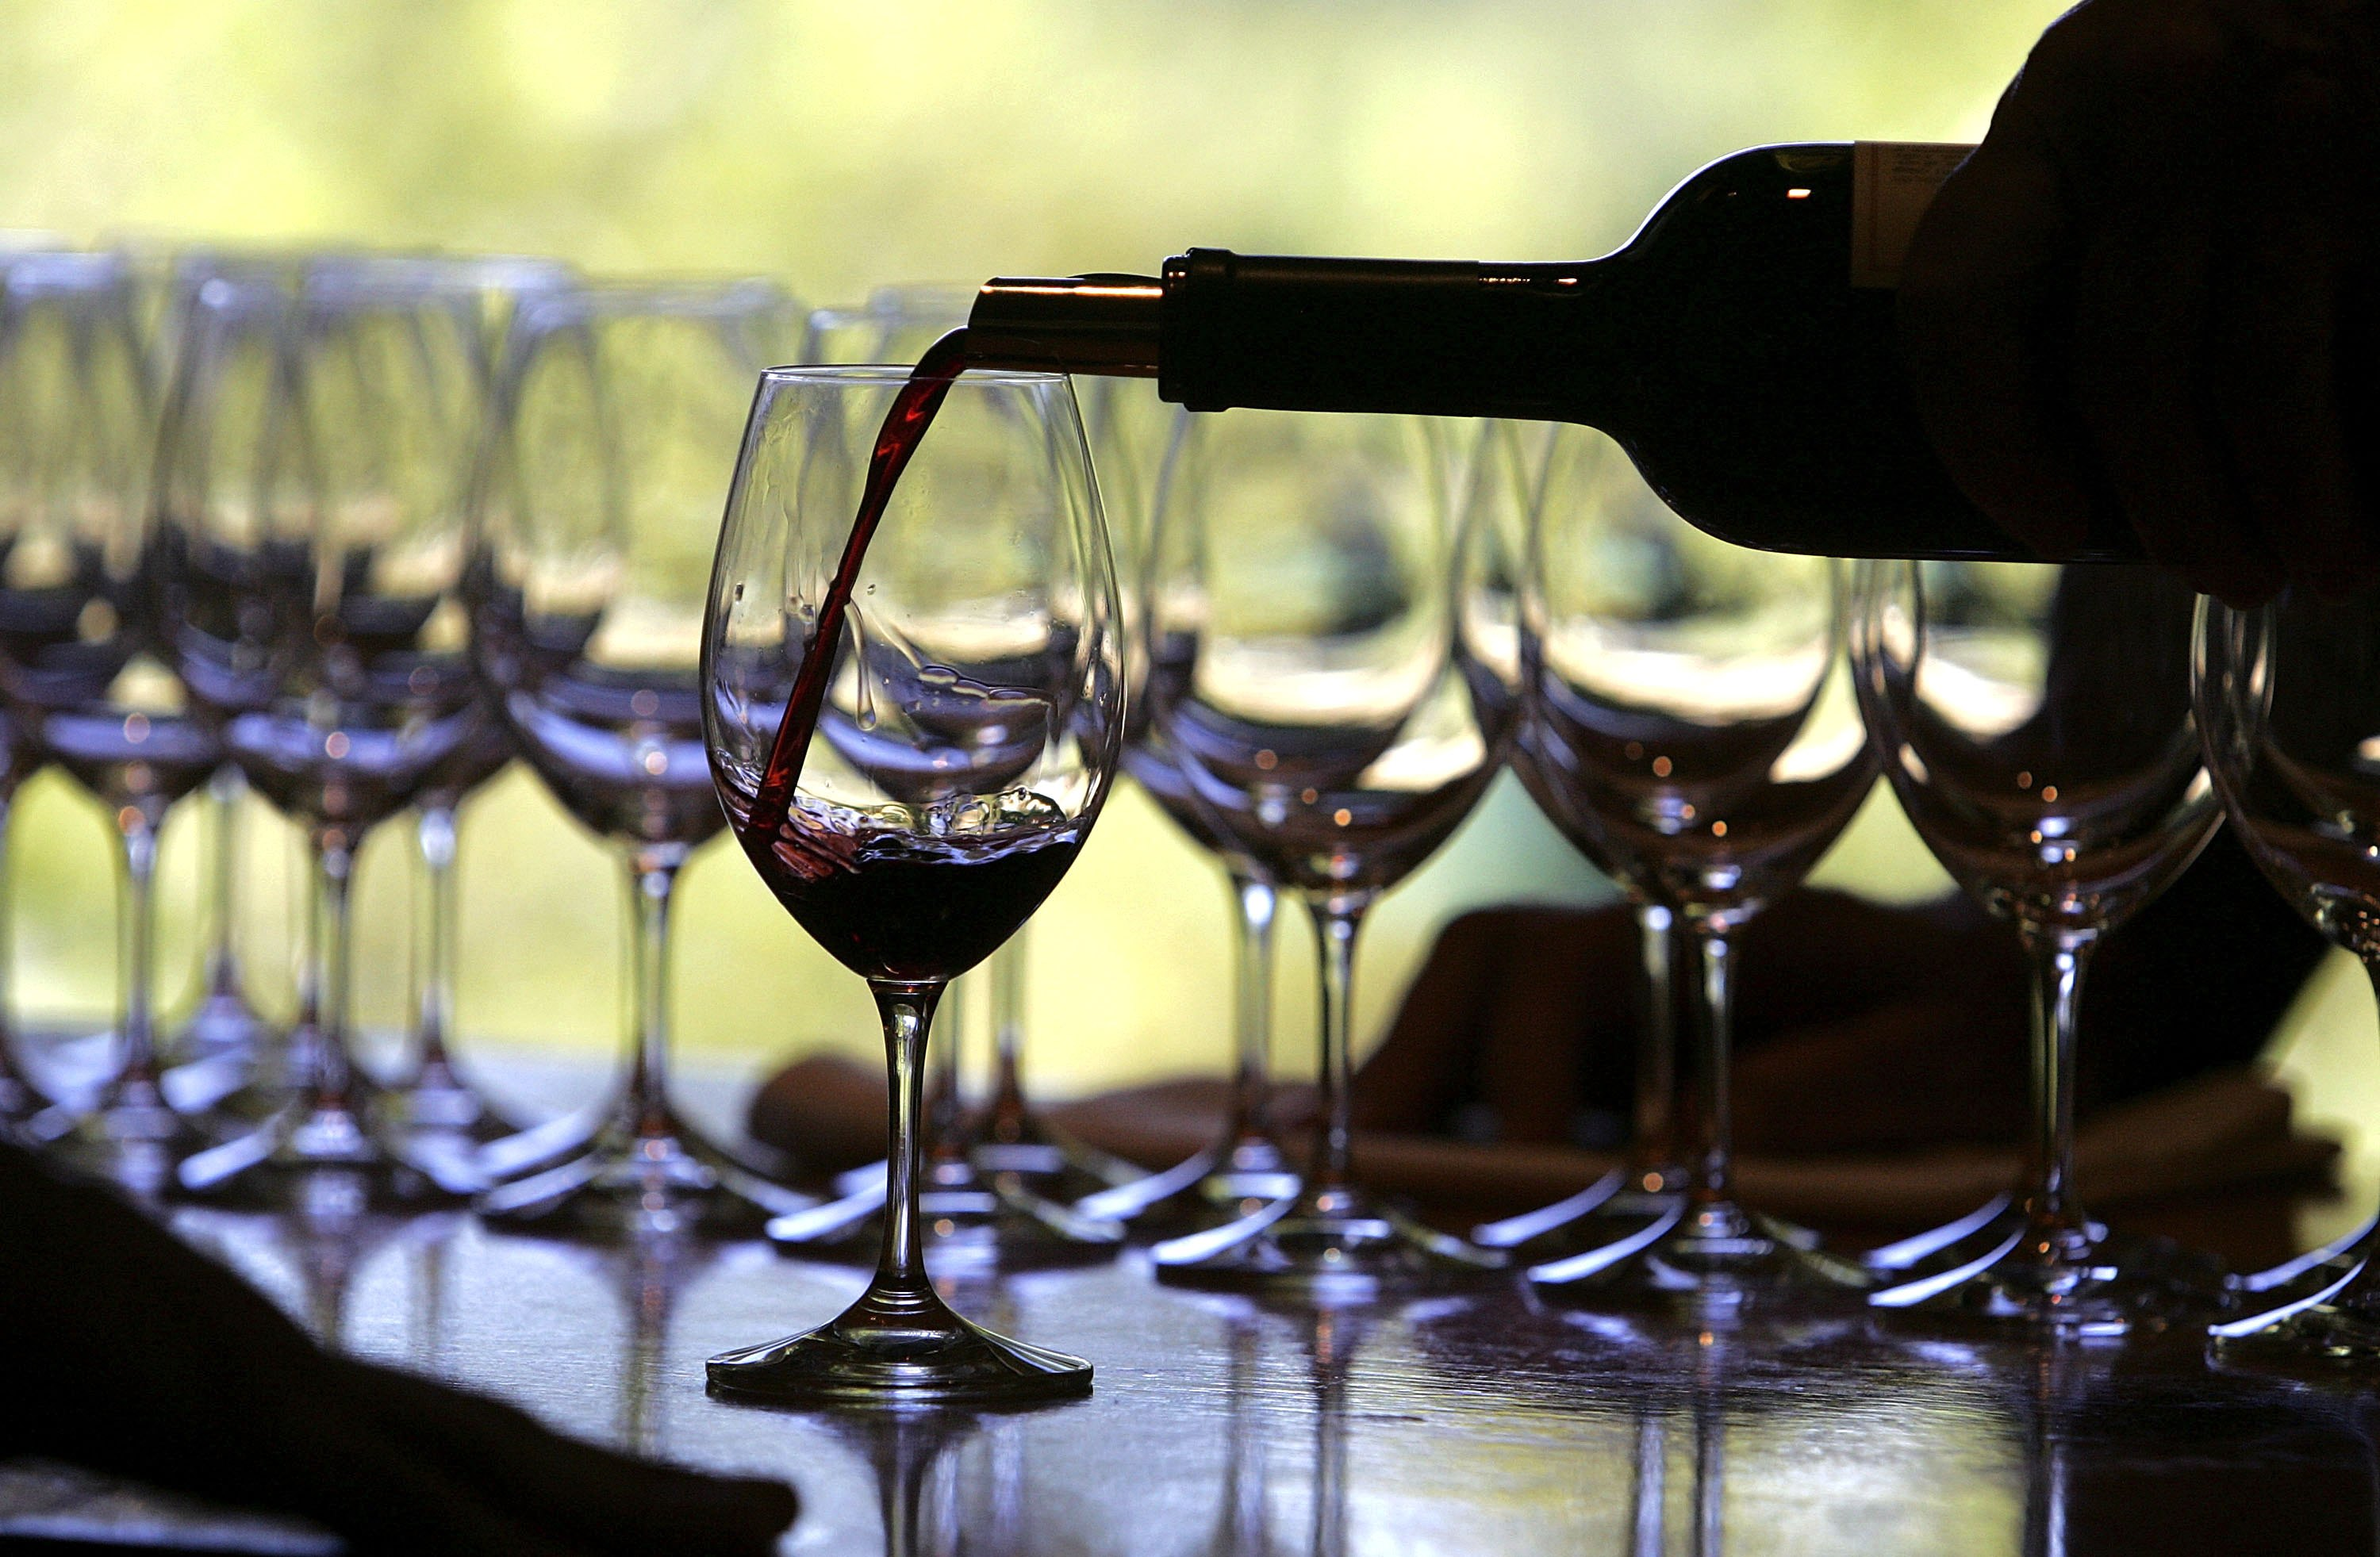 The International Organisation of Vine and Wine estimates a global decrease in wine production in 2016.